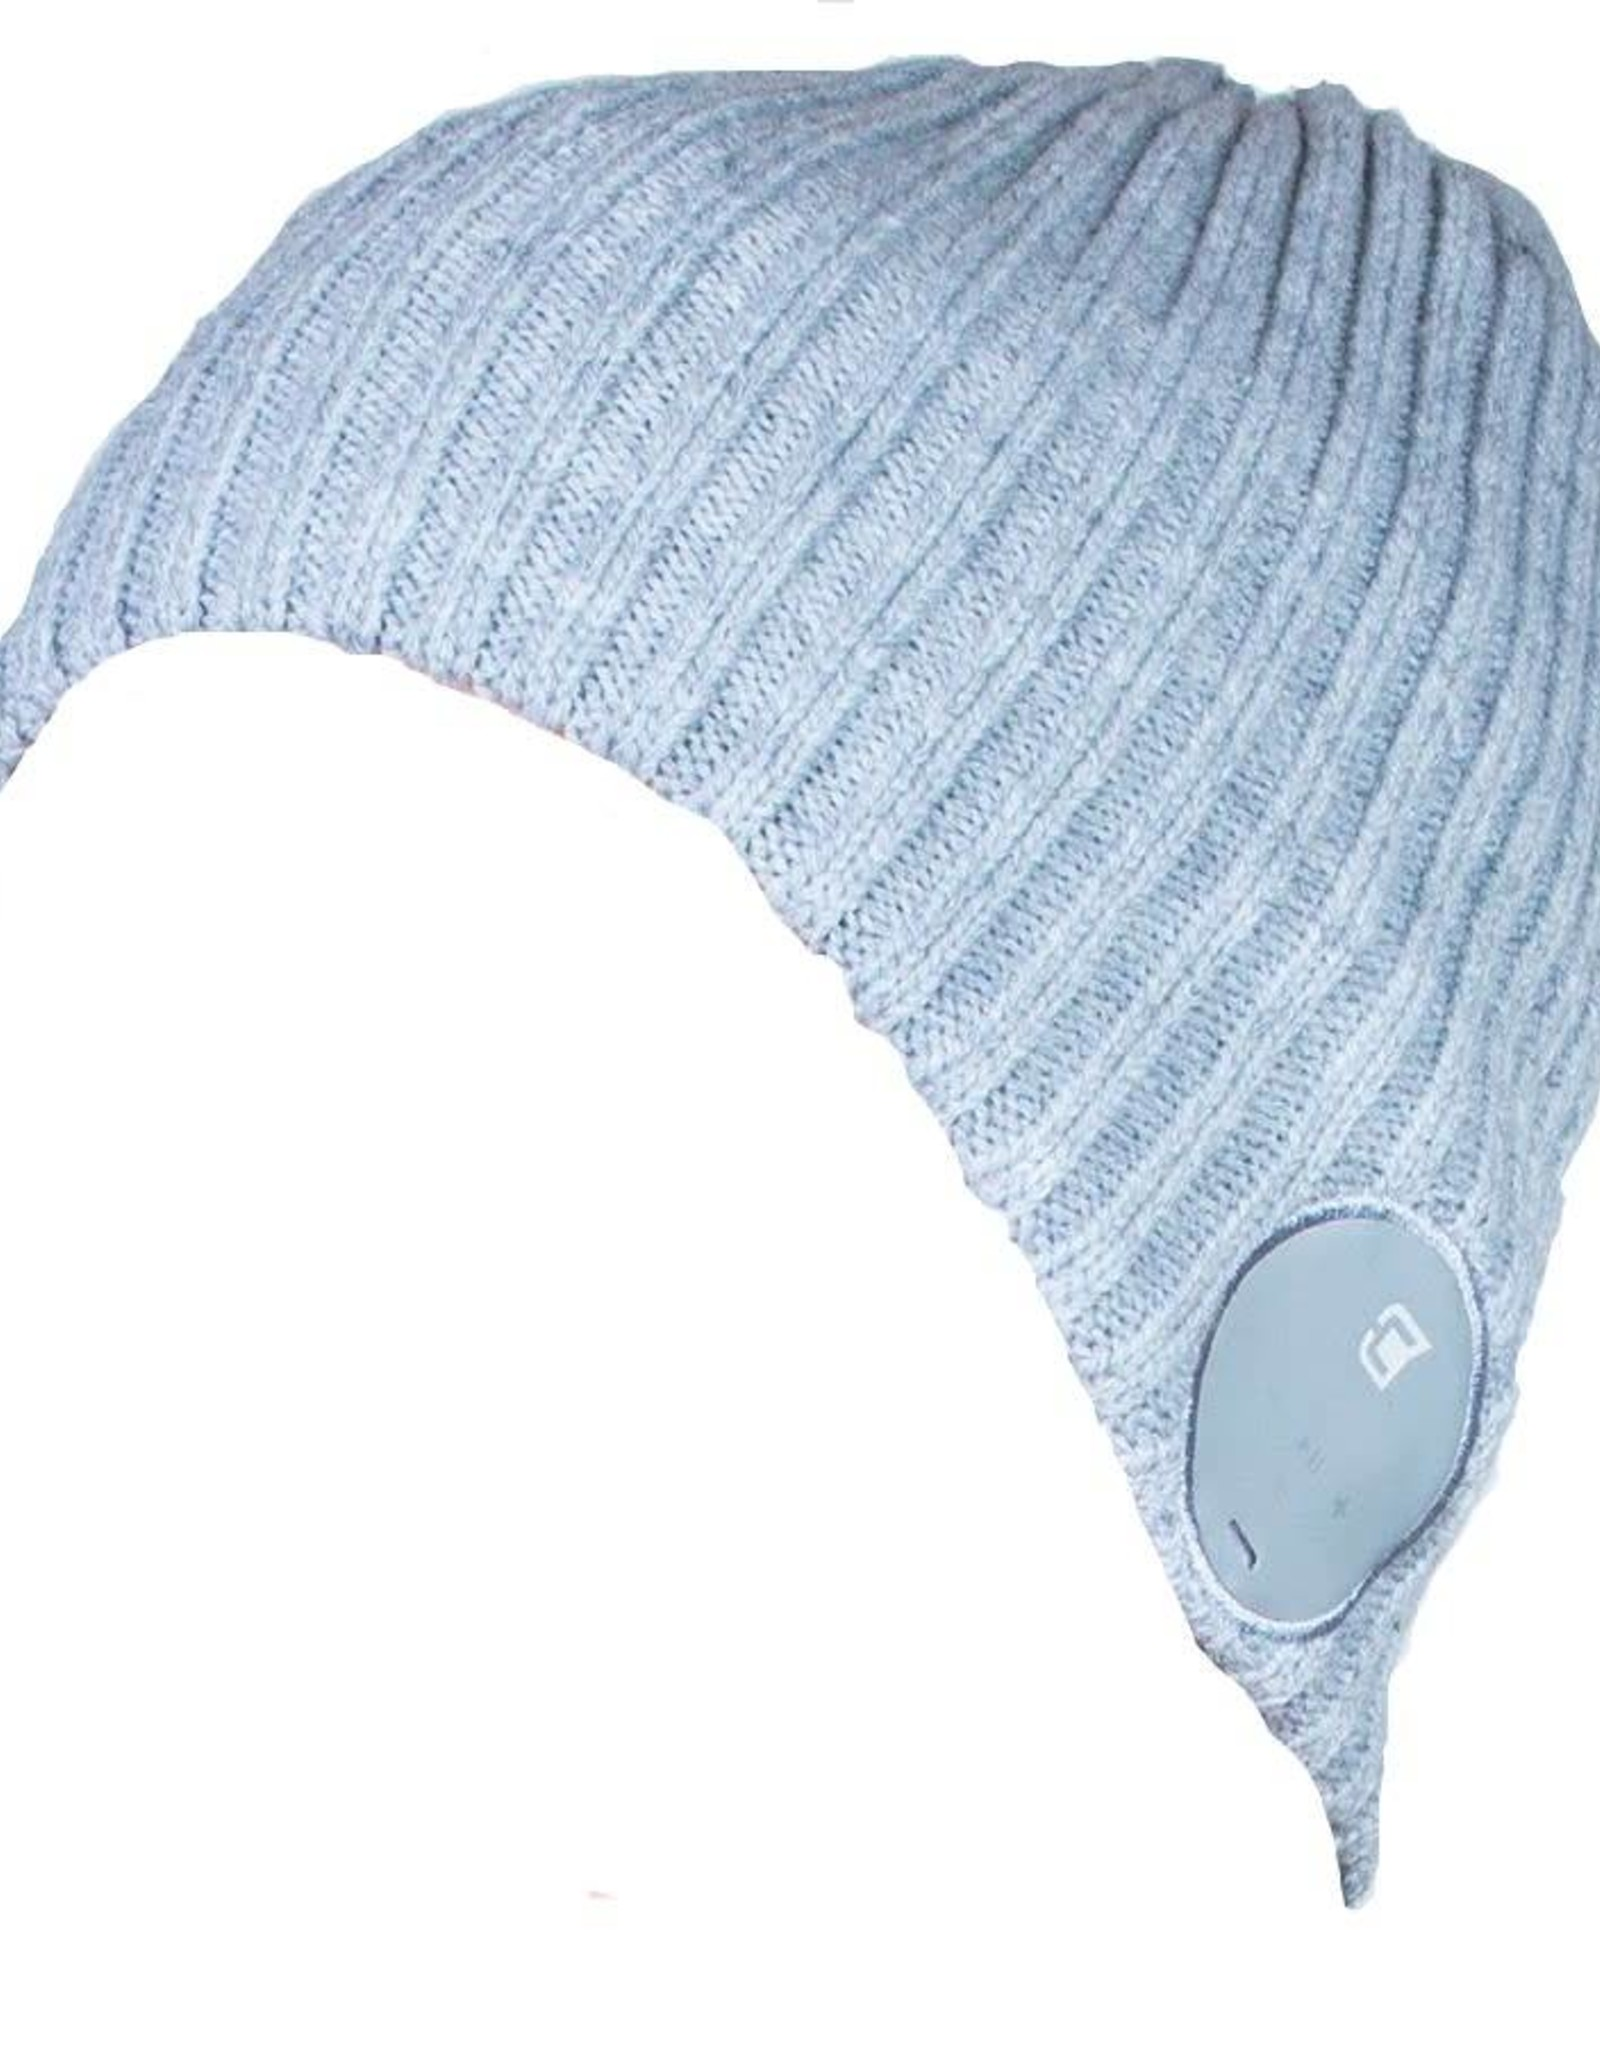 Caseco Caseco | Blu-Toque Wide Ribbed Bluetooth Beanie - Ash Grey | C53BT02